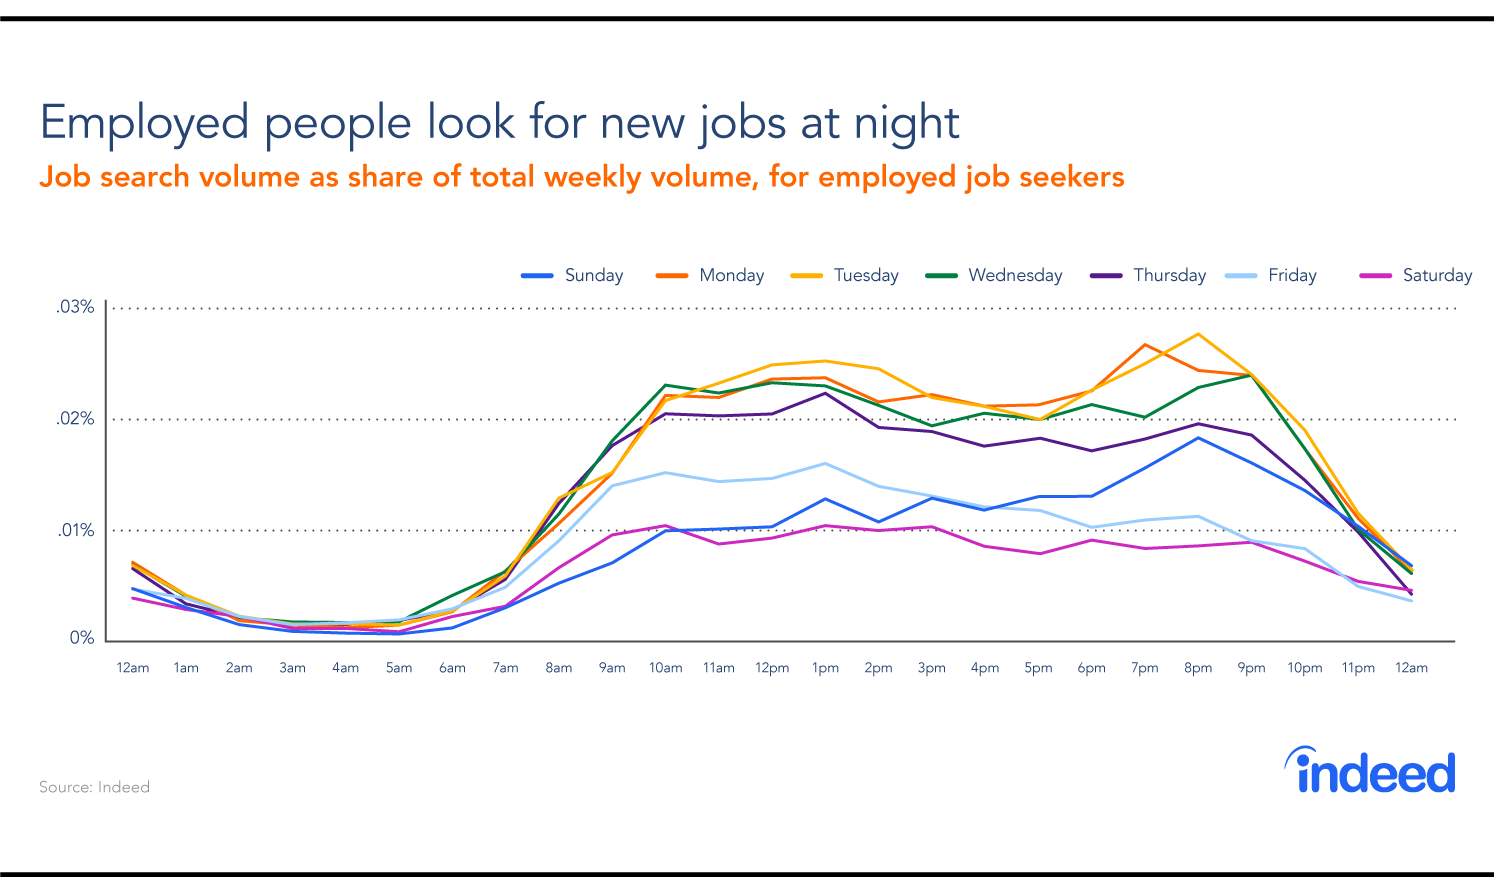 A graph showing the busiest days of the week and times of day that employed people look for jobs.